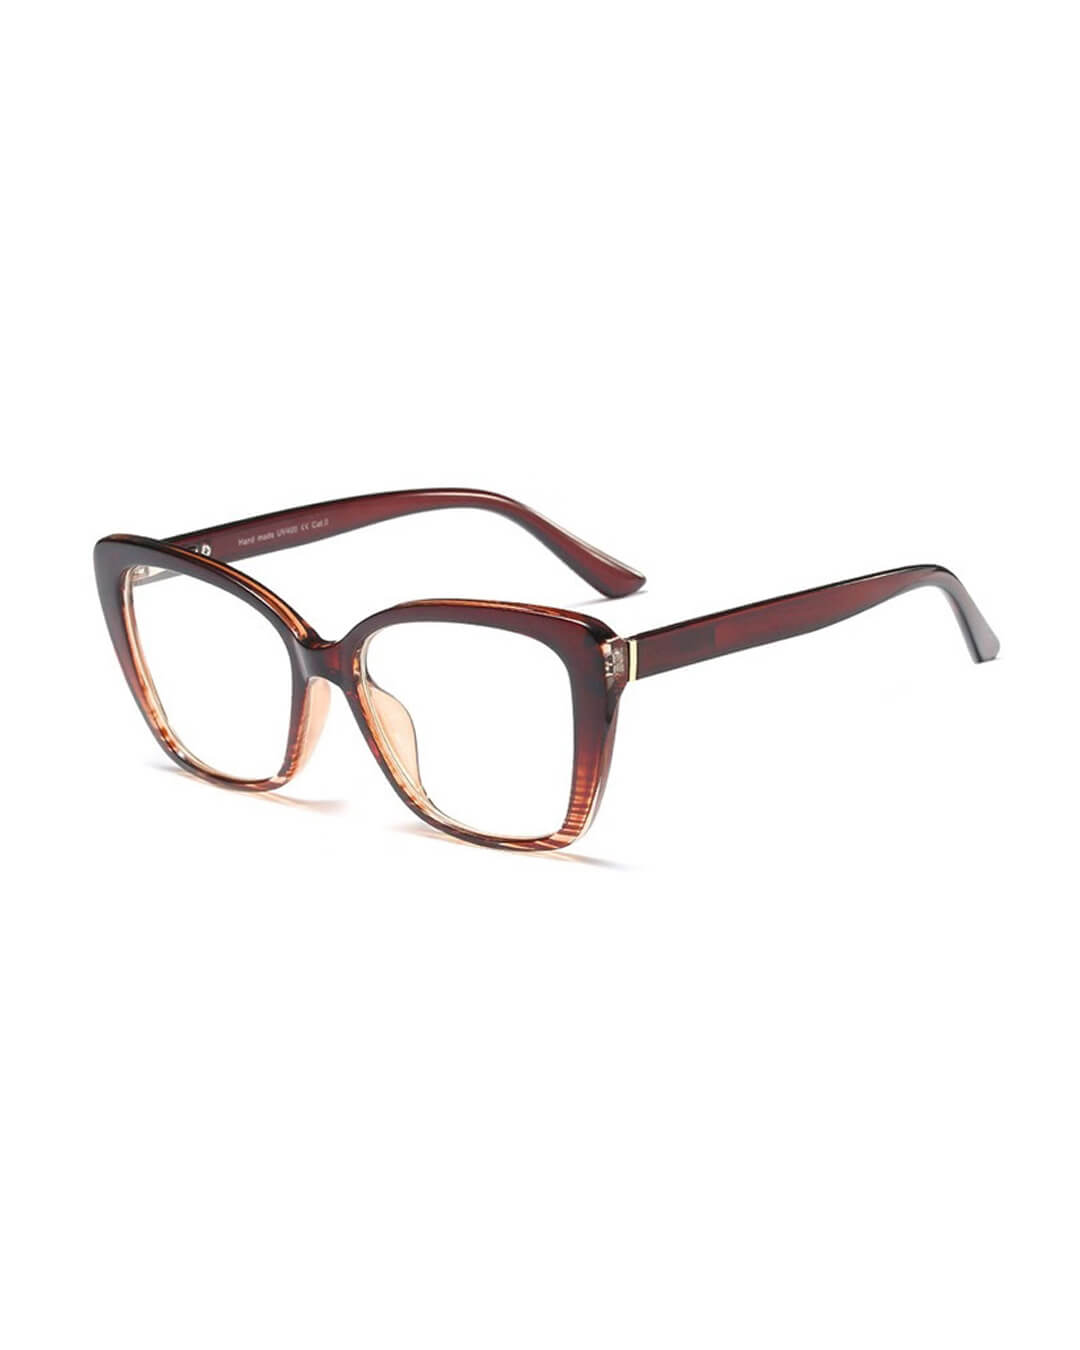 Tiffany-Opticals---Burgandy-2